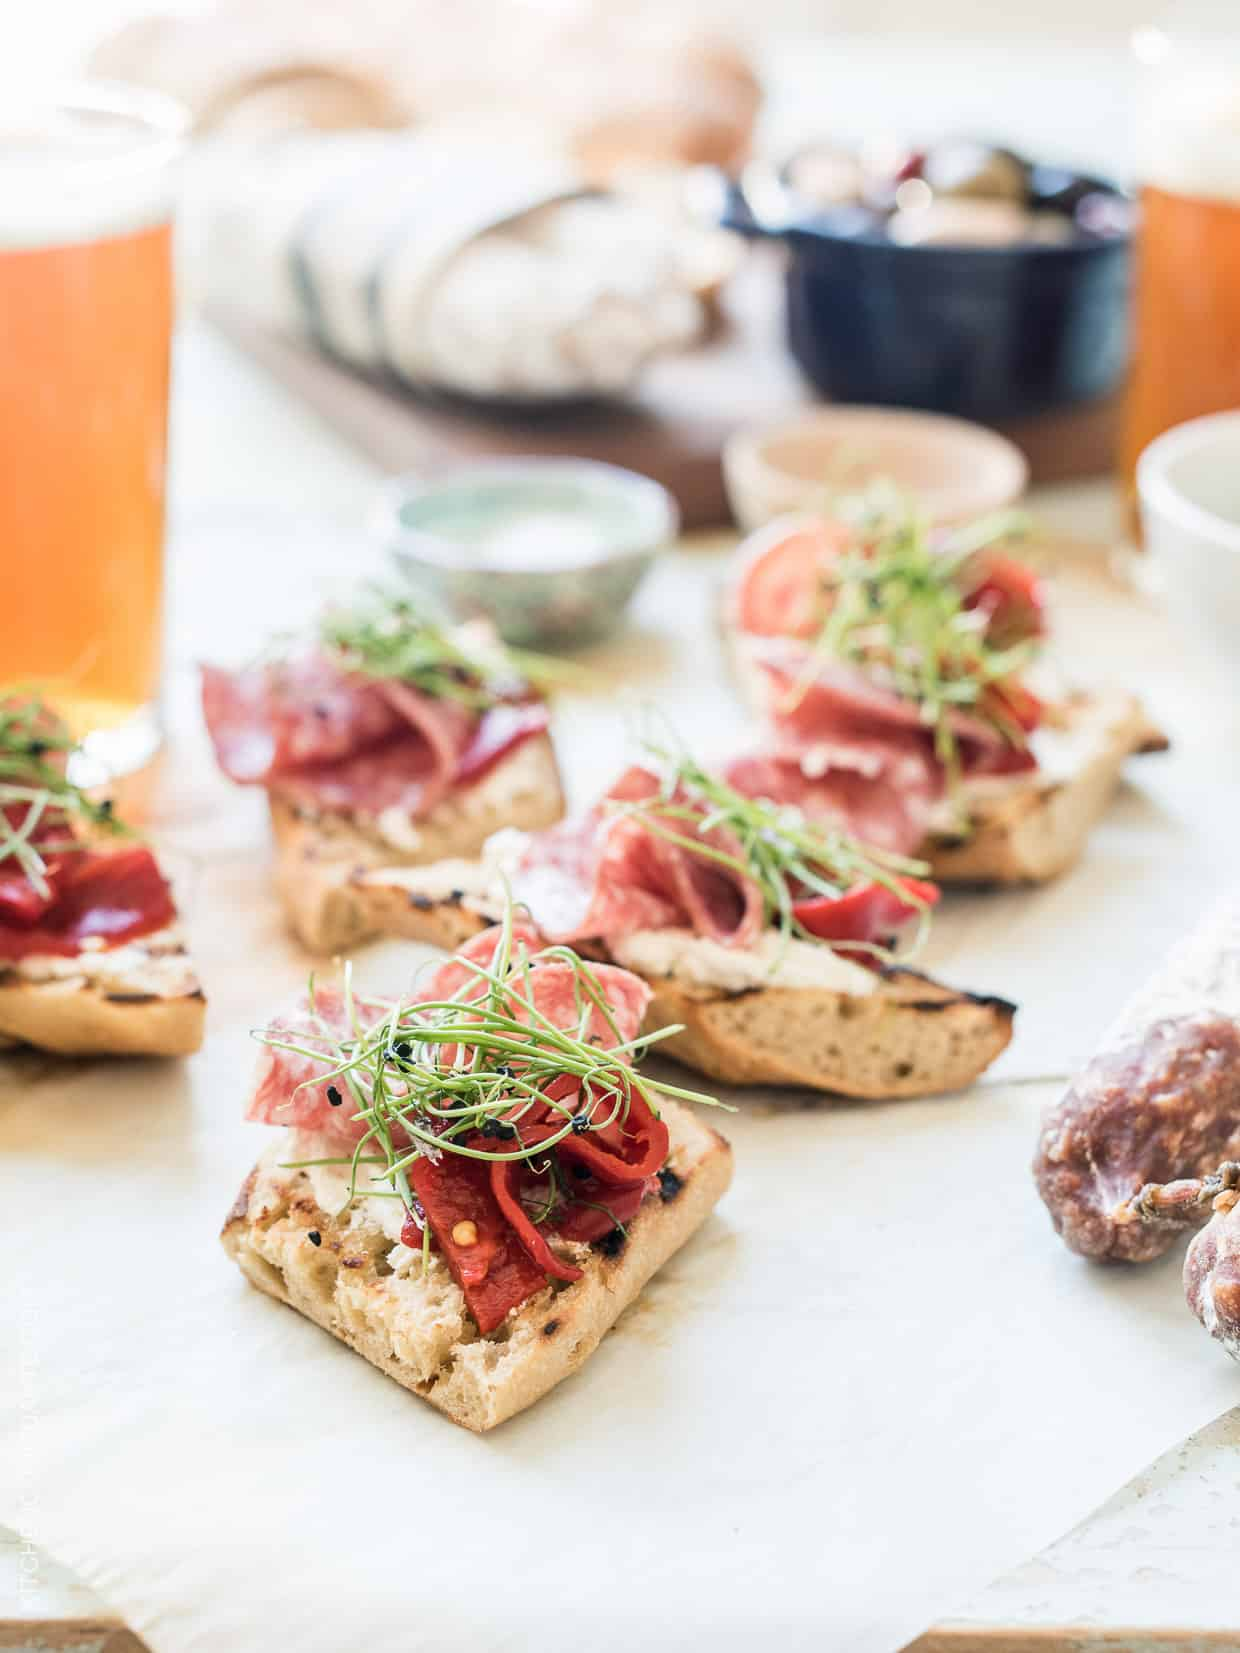 Beer Bread Bruschetta with Salami is my antidote to everything summer: picnics, parties, or light summer meals! You'll love these bites made with homemade beer bread and @columbusmeats #salami - it pairs #craftmeat with craft beer in each bite! #nobaloney #ad